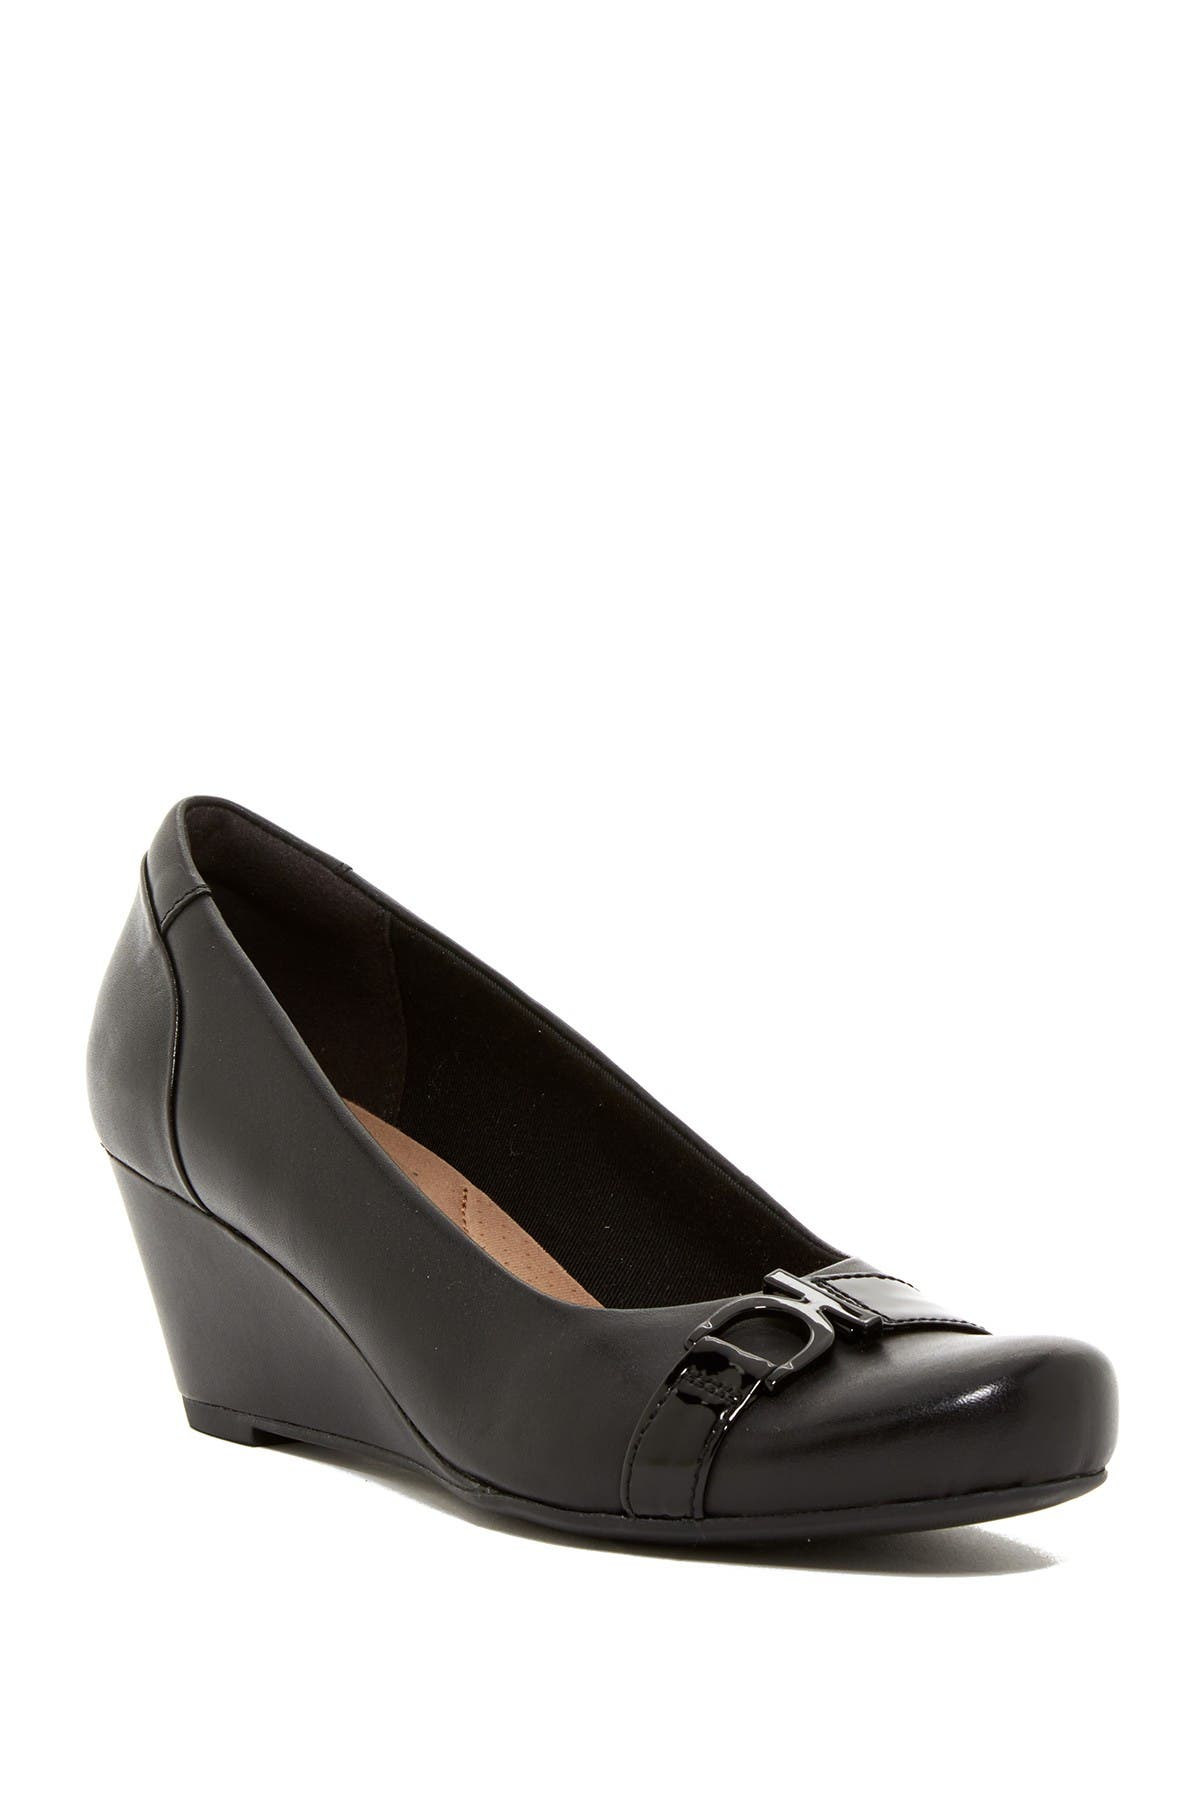 Image of Clarks Flores Poppy Wedge Pump - Wide Width Available